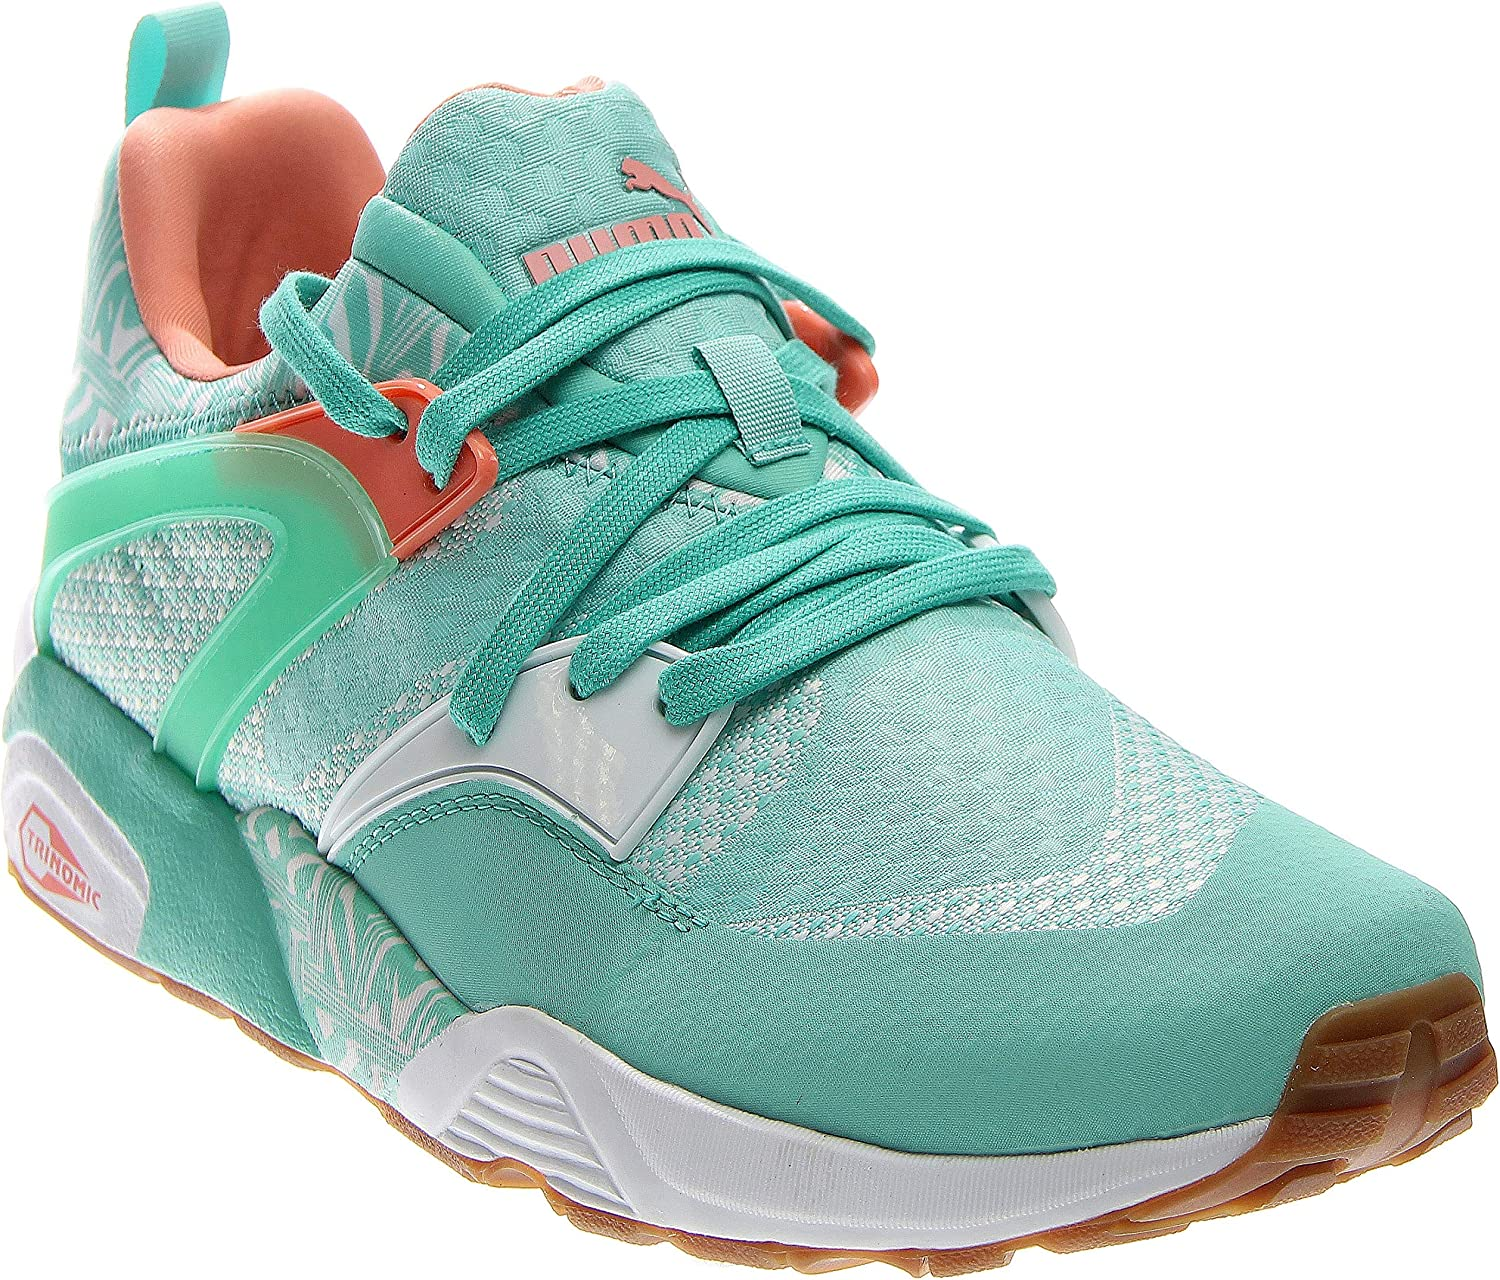 PUMA Mens Blaze of Glory Woven Running Casual Sneakers,